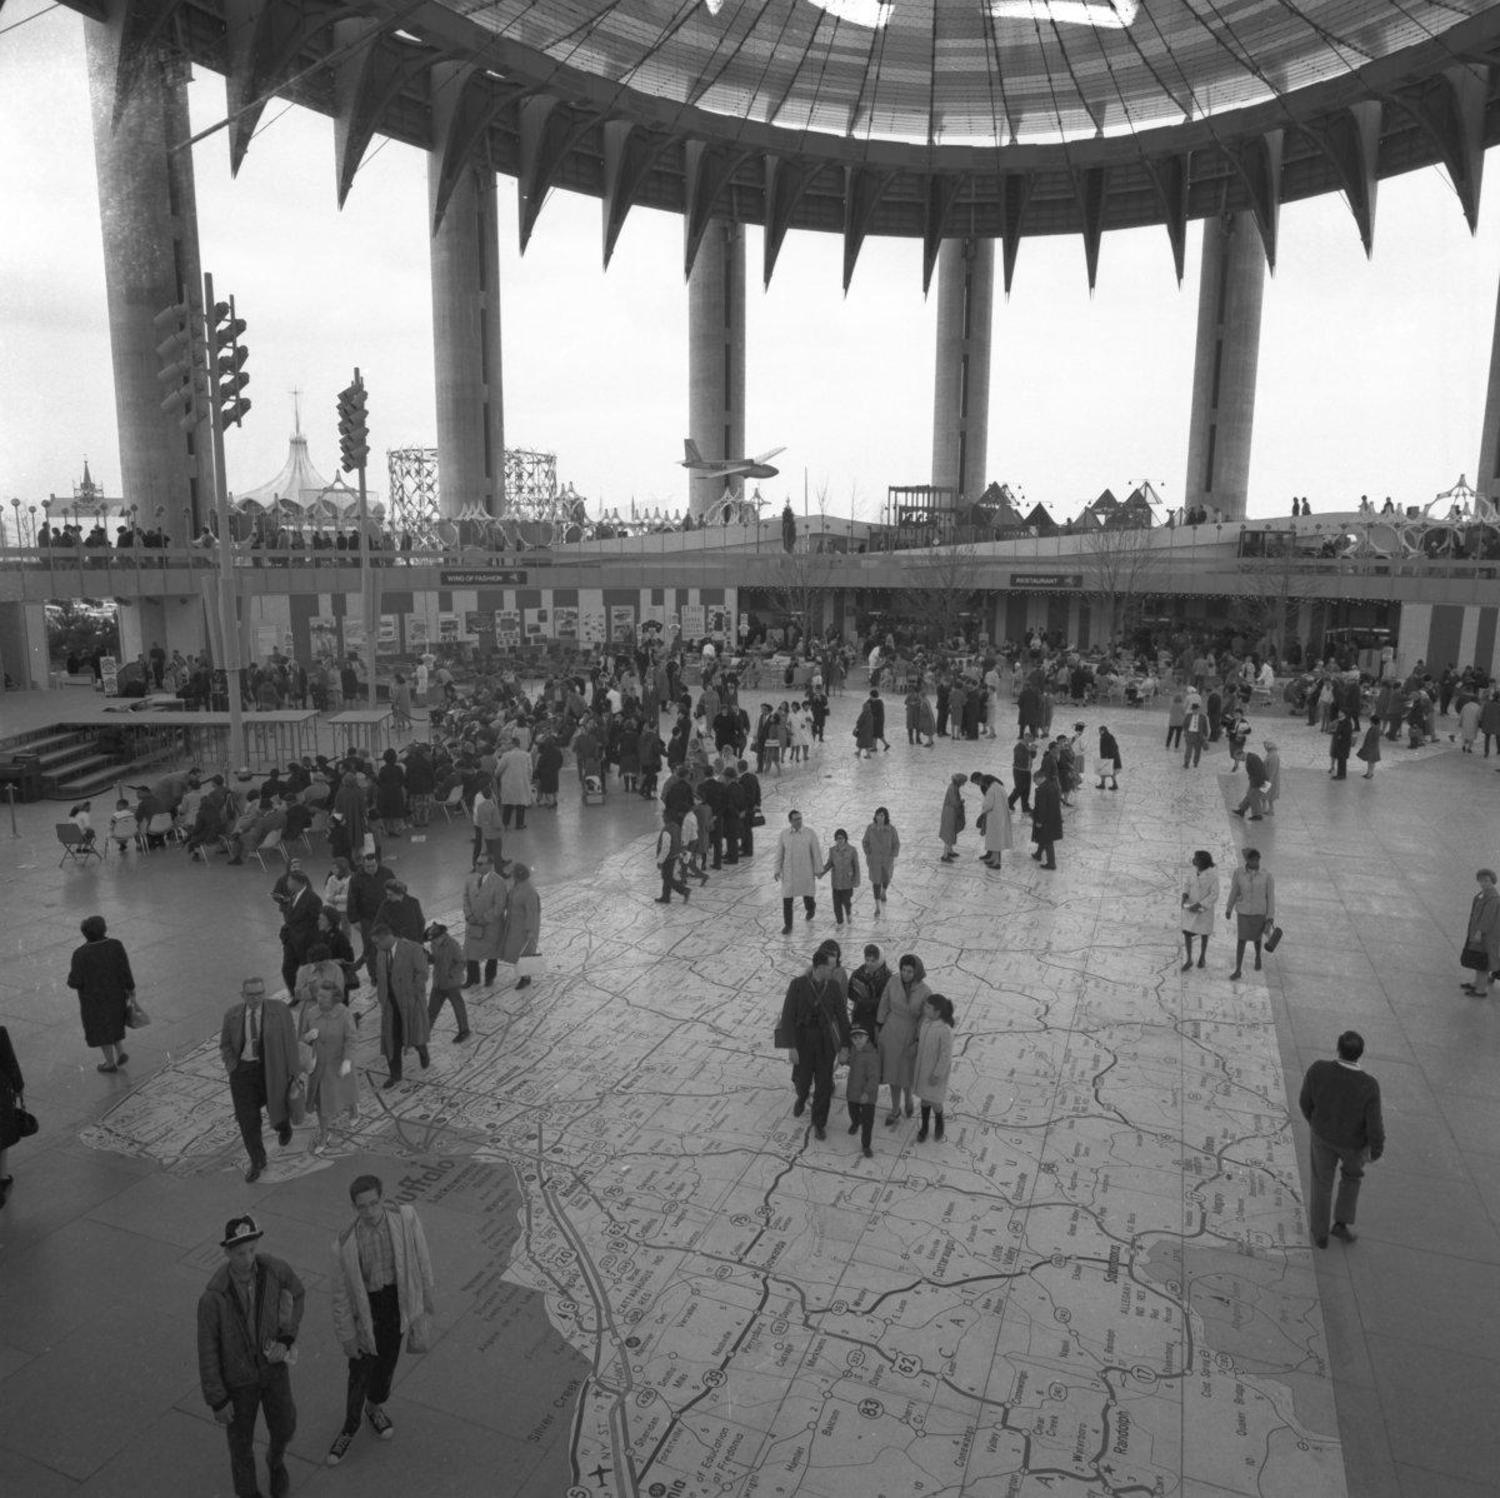 The Tent of Tomorrow in the New York State Pavilion from the 1964-65 World's Fair. At what is now Flushing Meadows-Corona Park in Queens. On the floor the largest map in the world at the time, a 130-by-166-foot map of New York State.